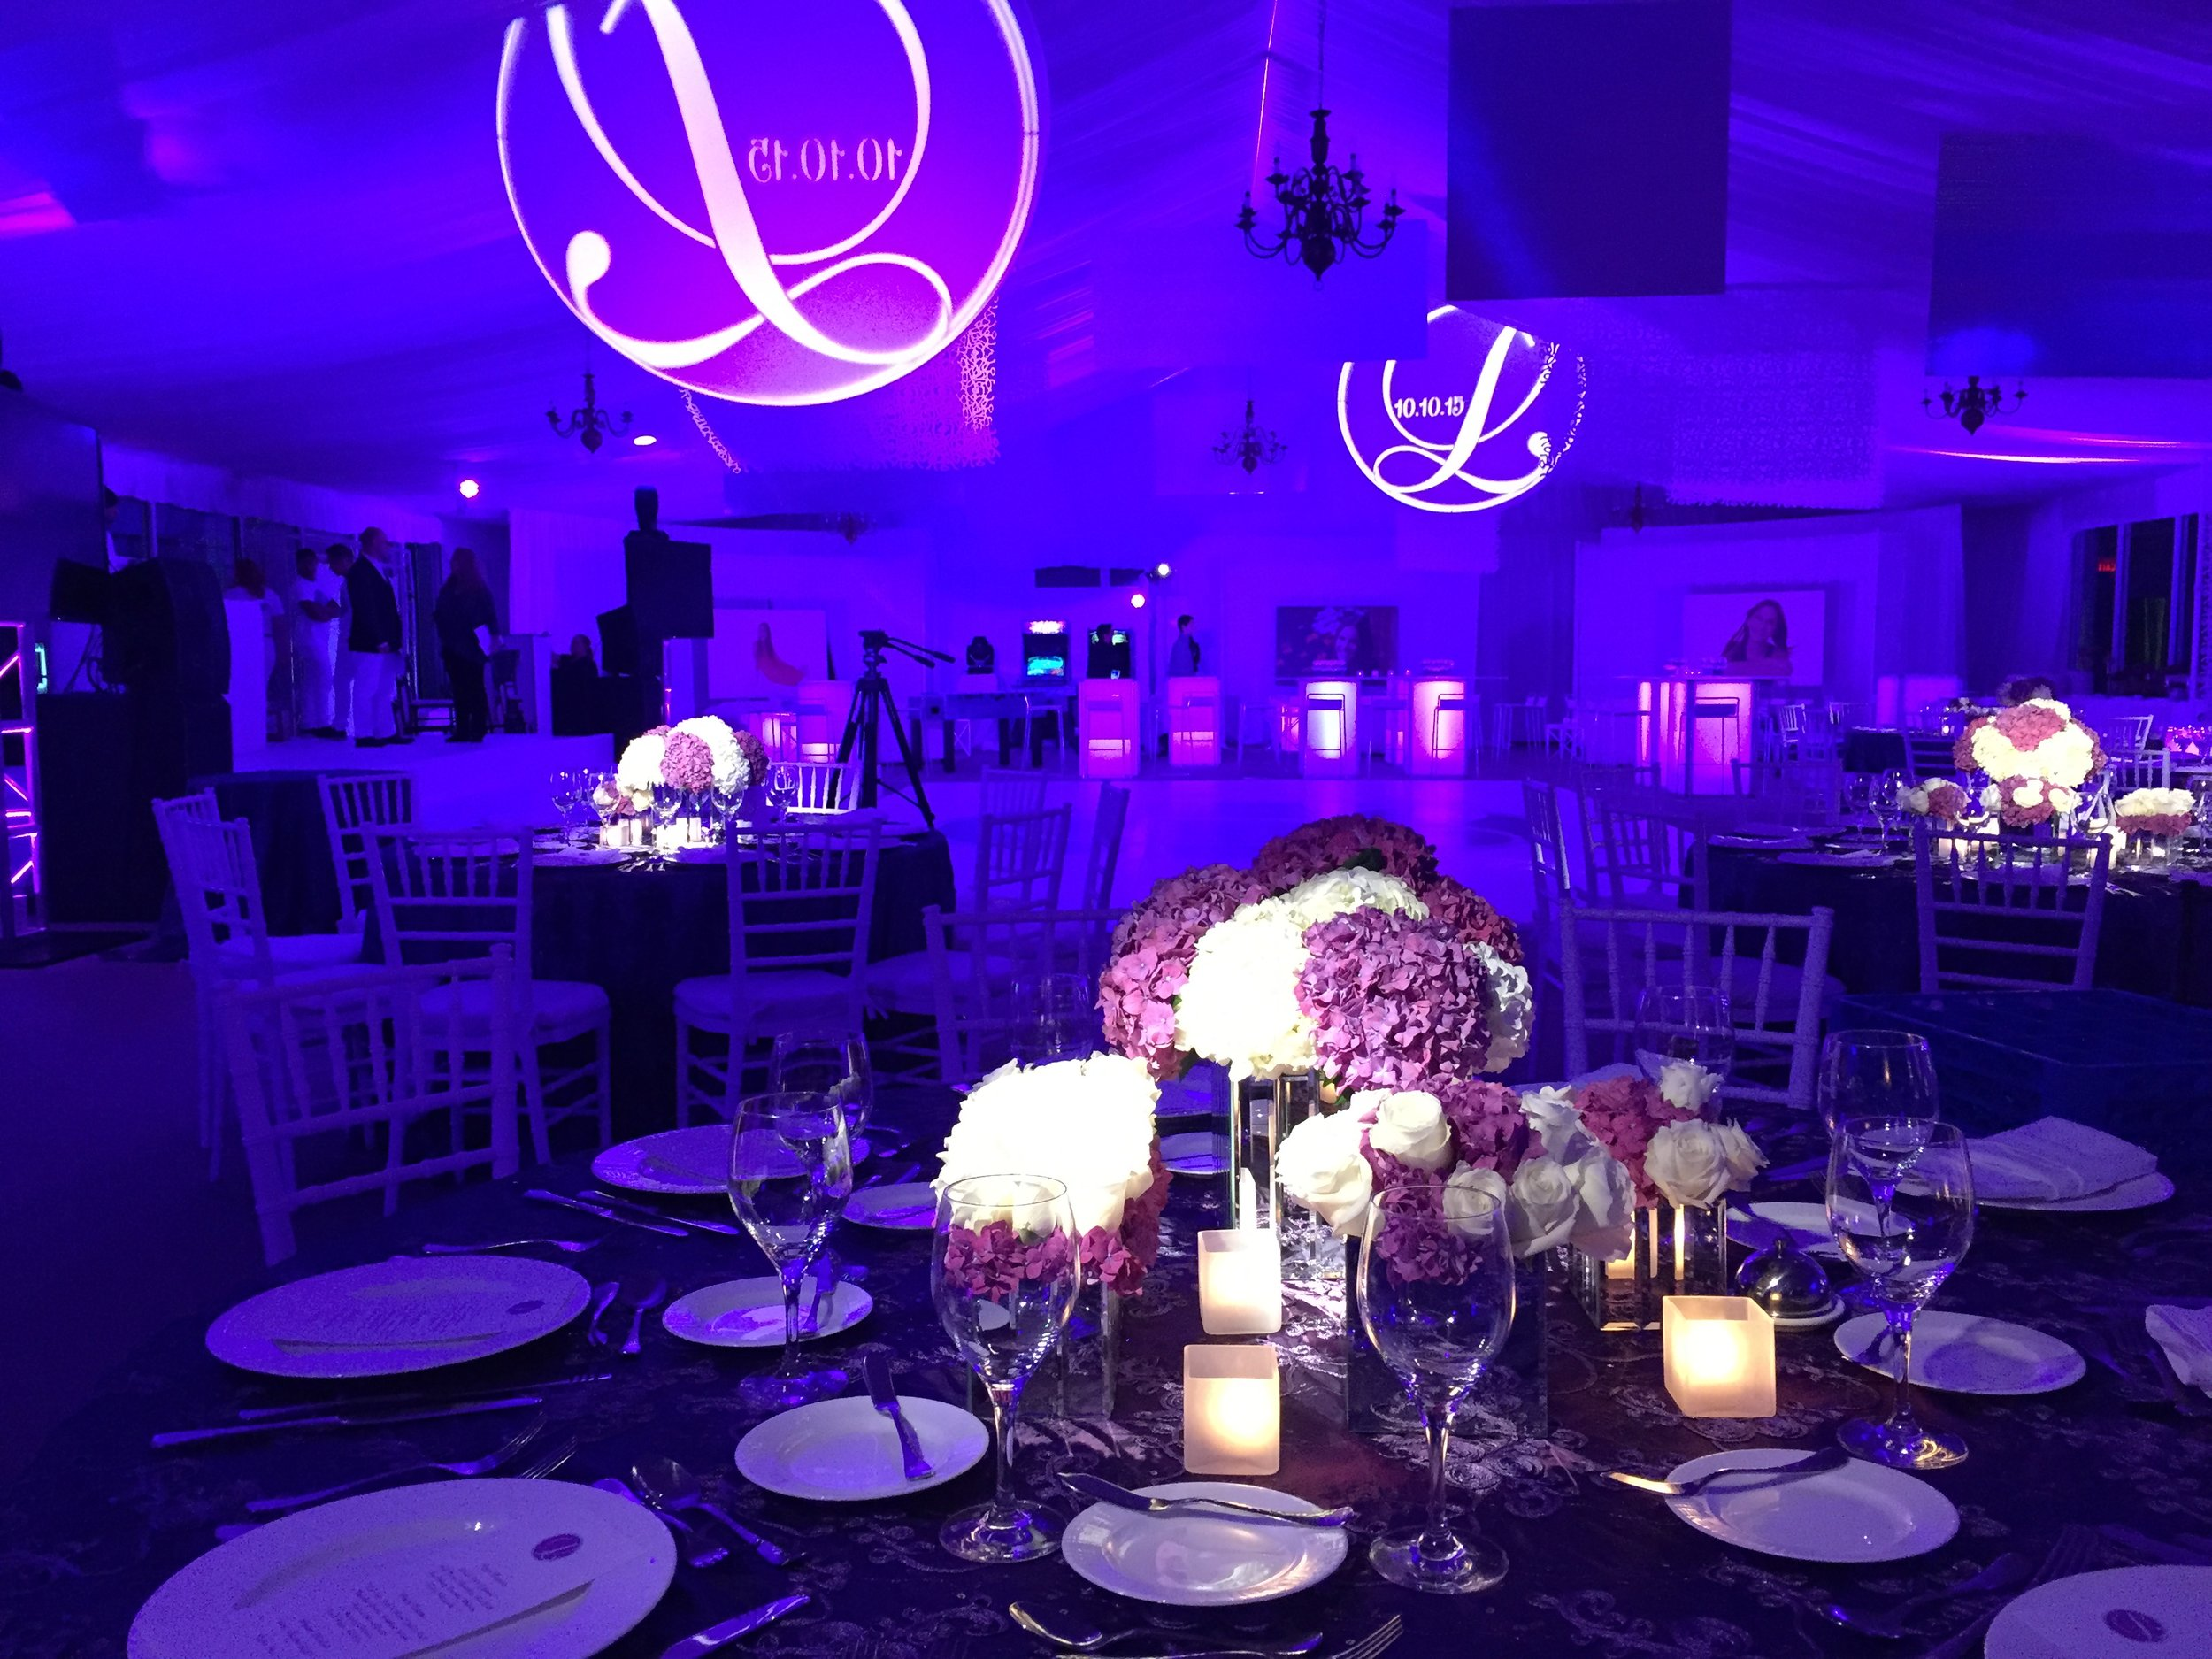 Bat+Mitzvah+Bar+Mitzvahs+decor+lighting+centerpieces+nj+ny+PA.jpg